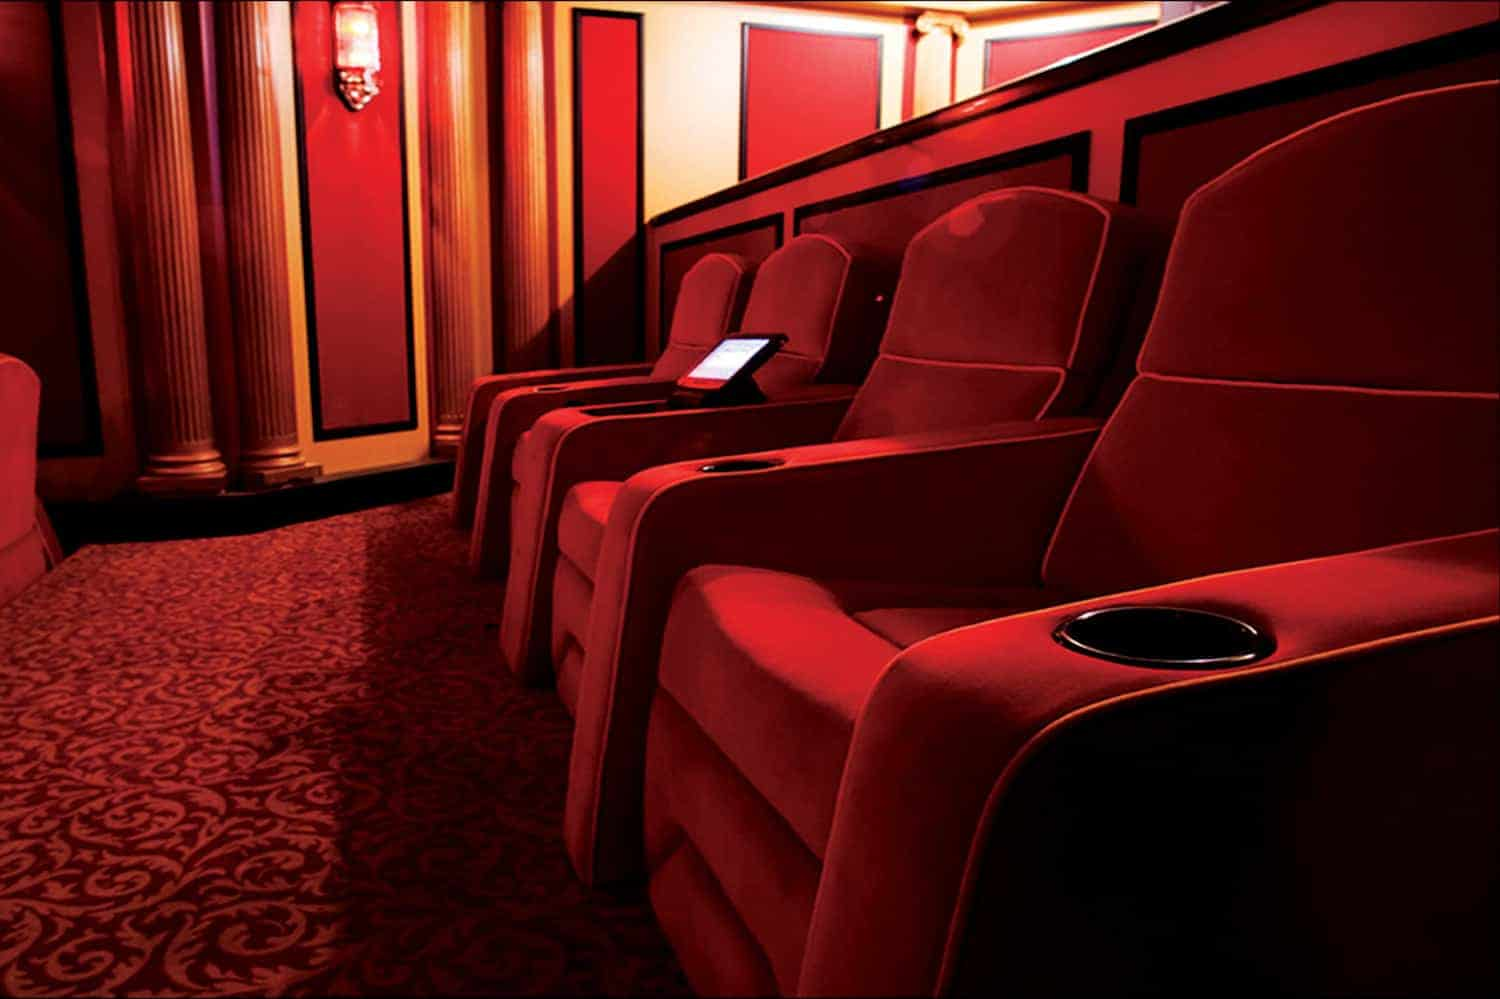 Home theater chairs red velvet